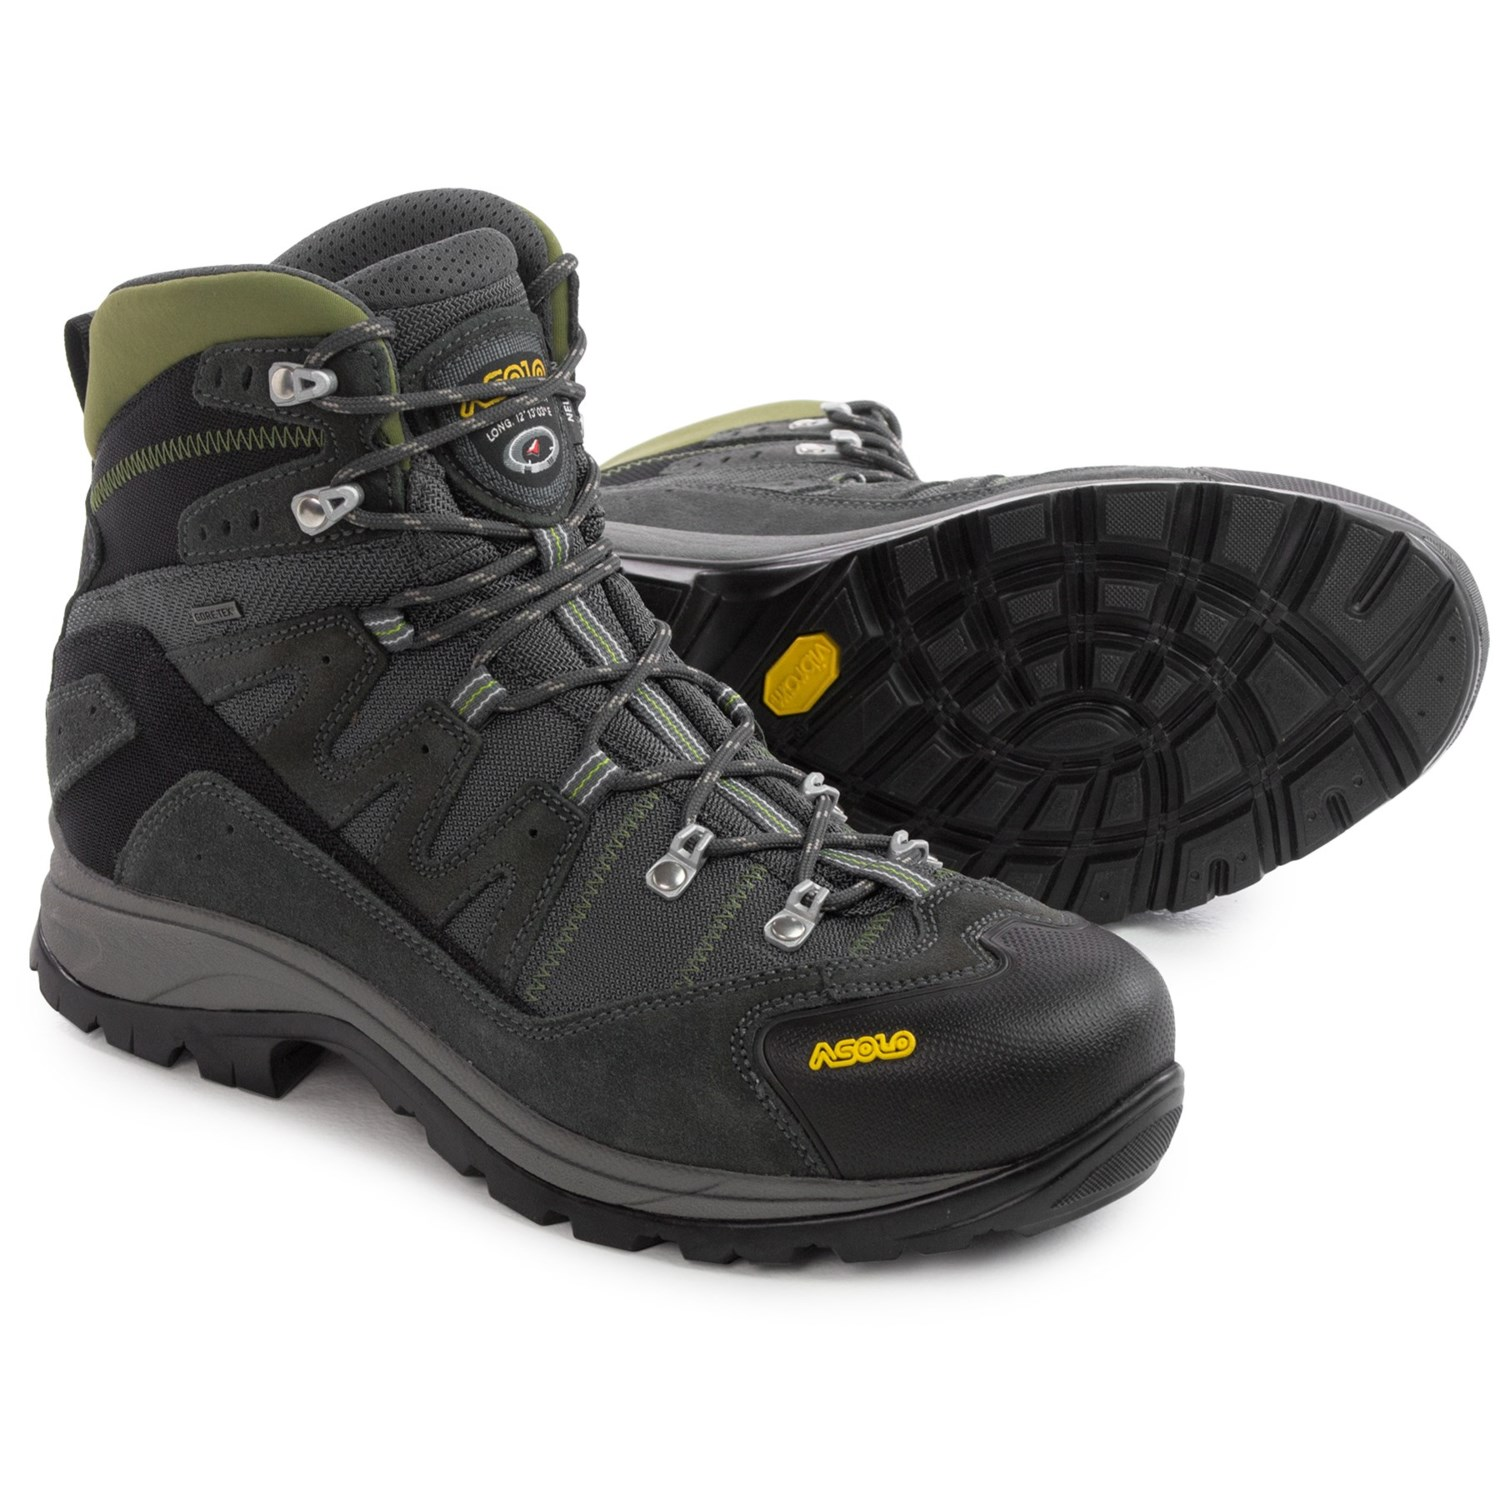 Best Ultralight Backpacking Boots